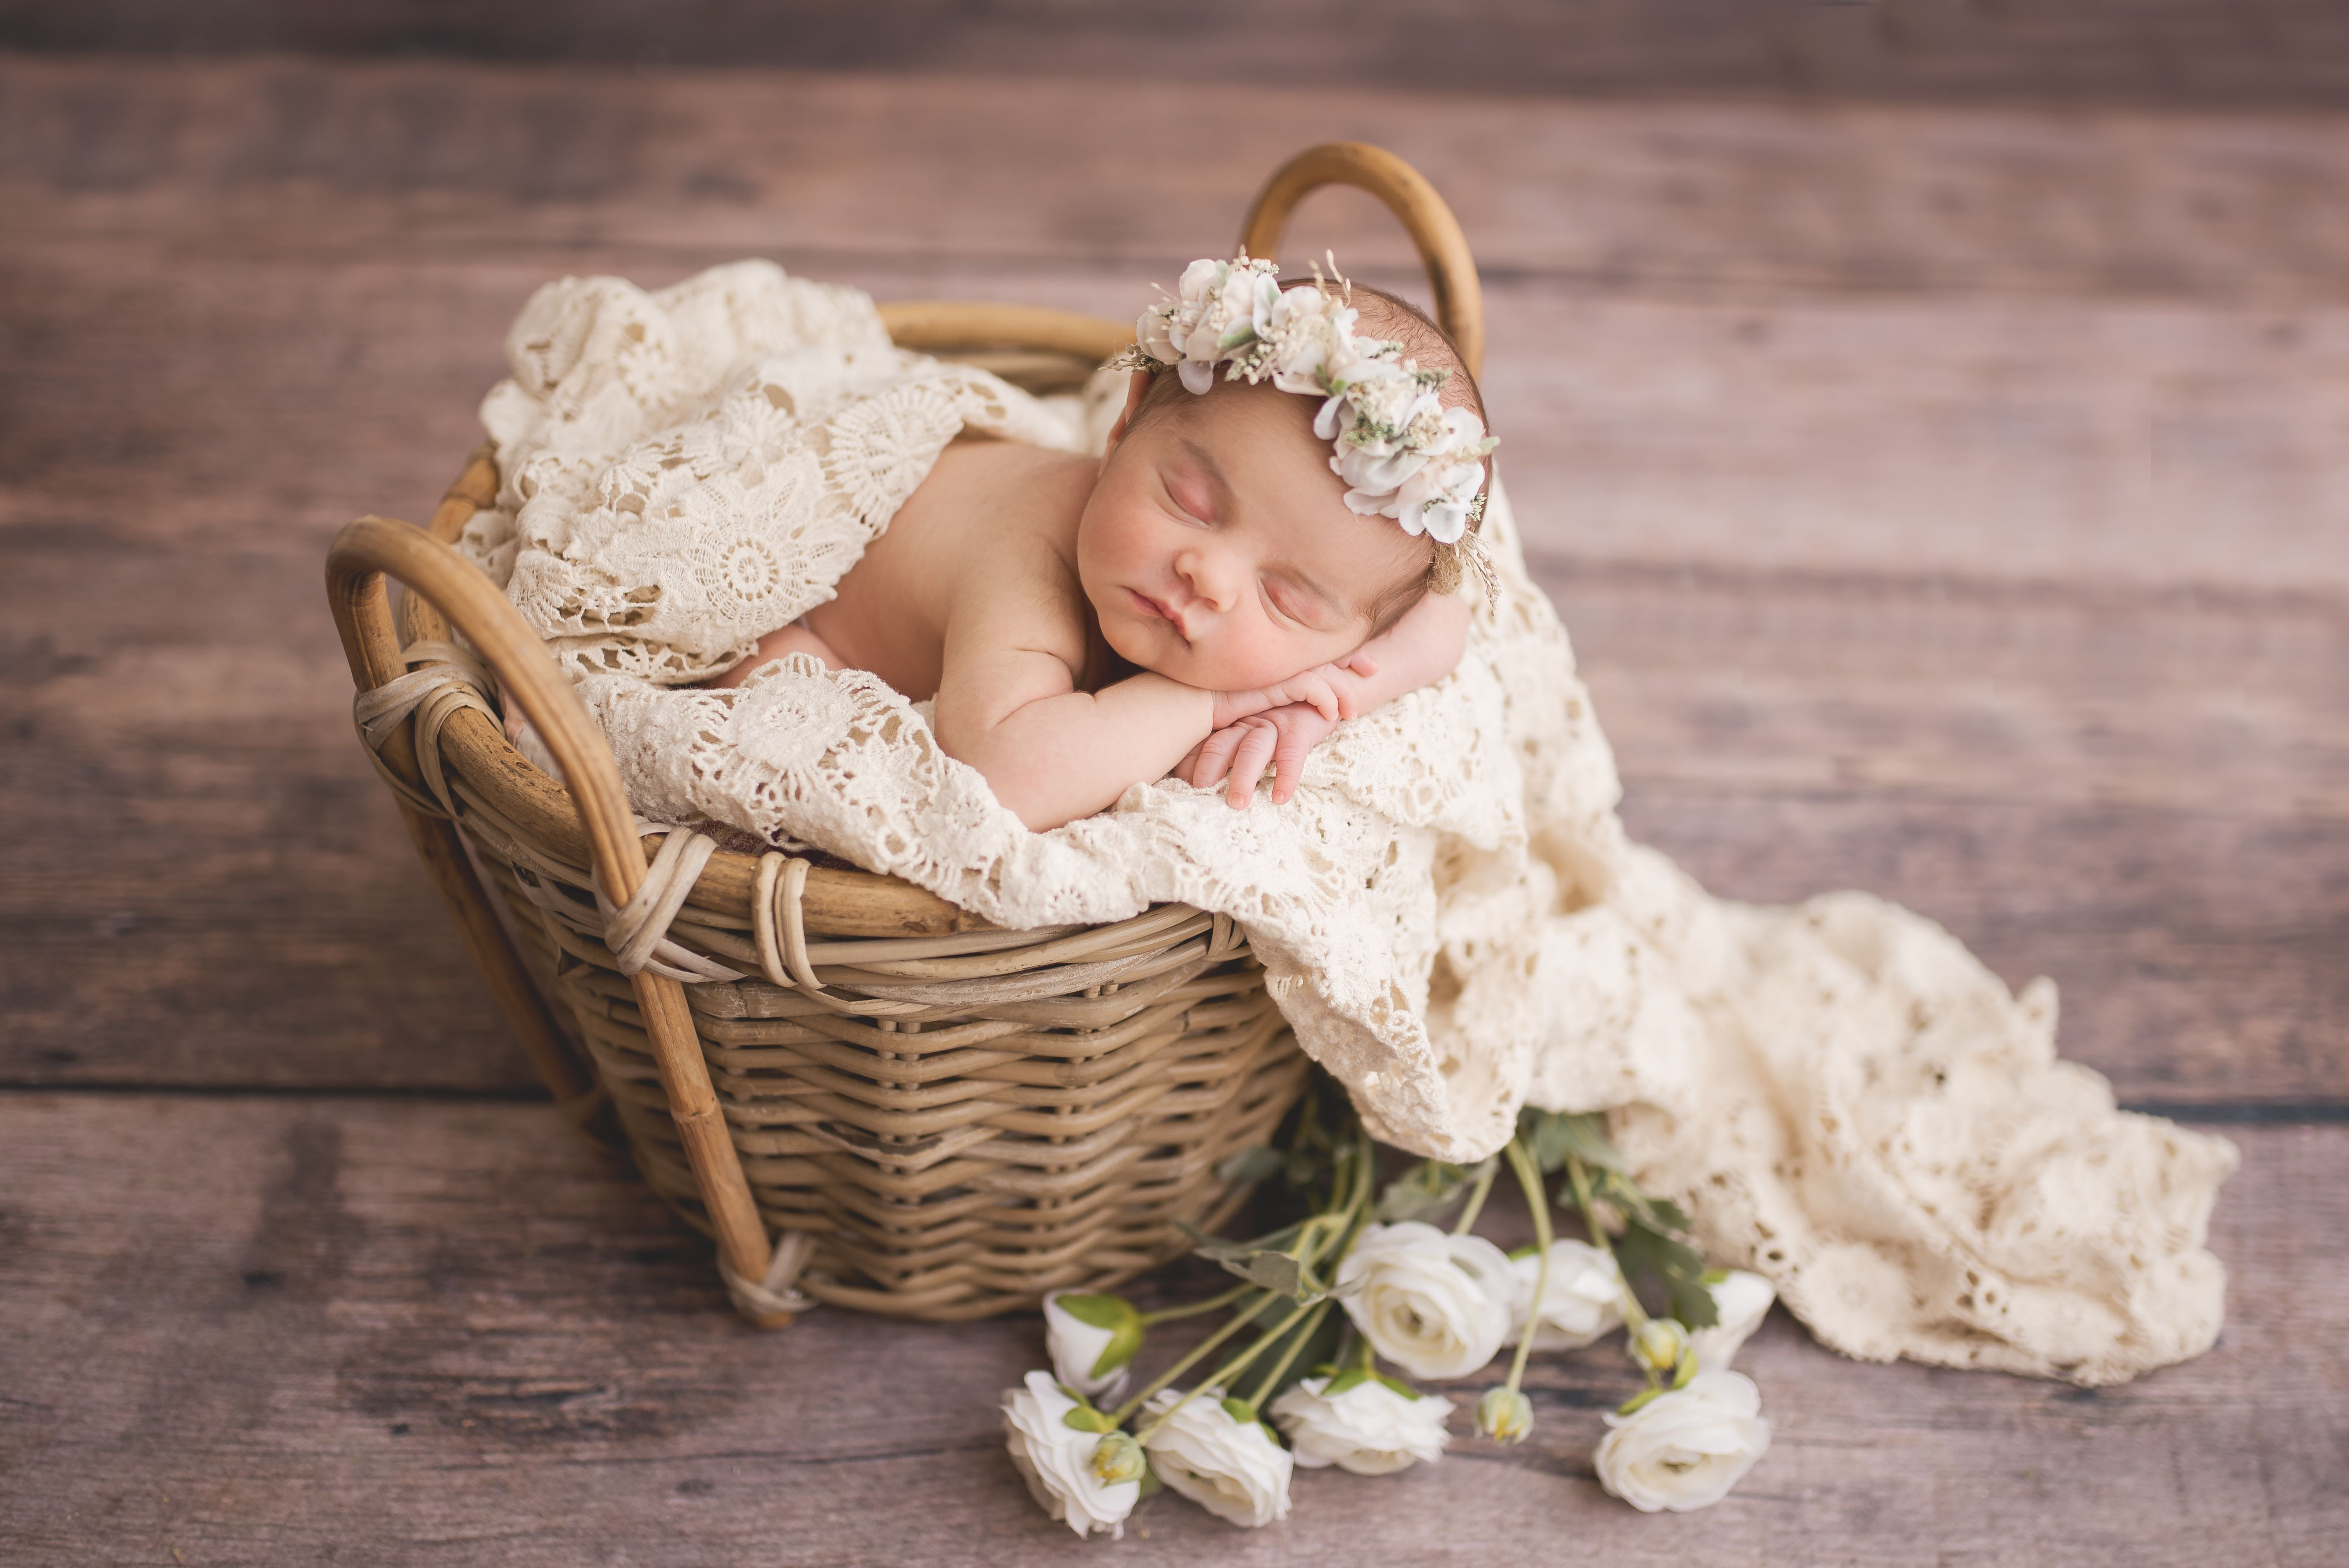 Kelly kristine photography newborn baby girl and flowers